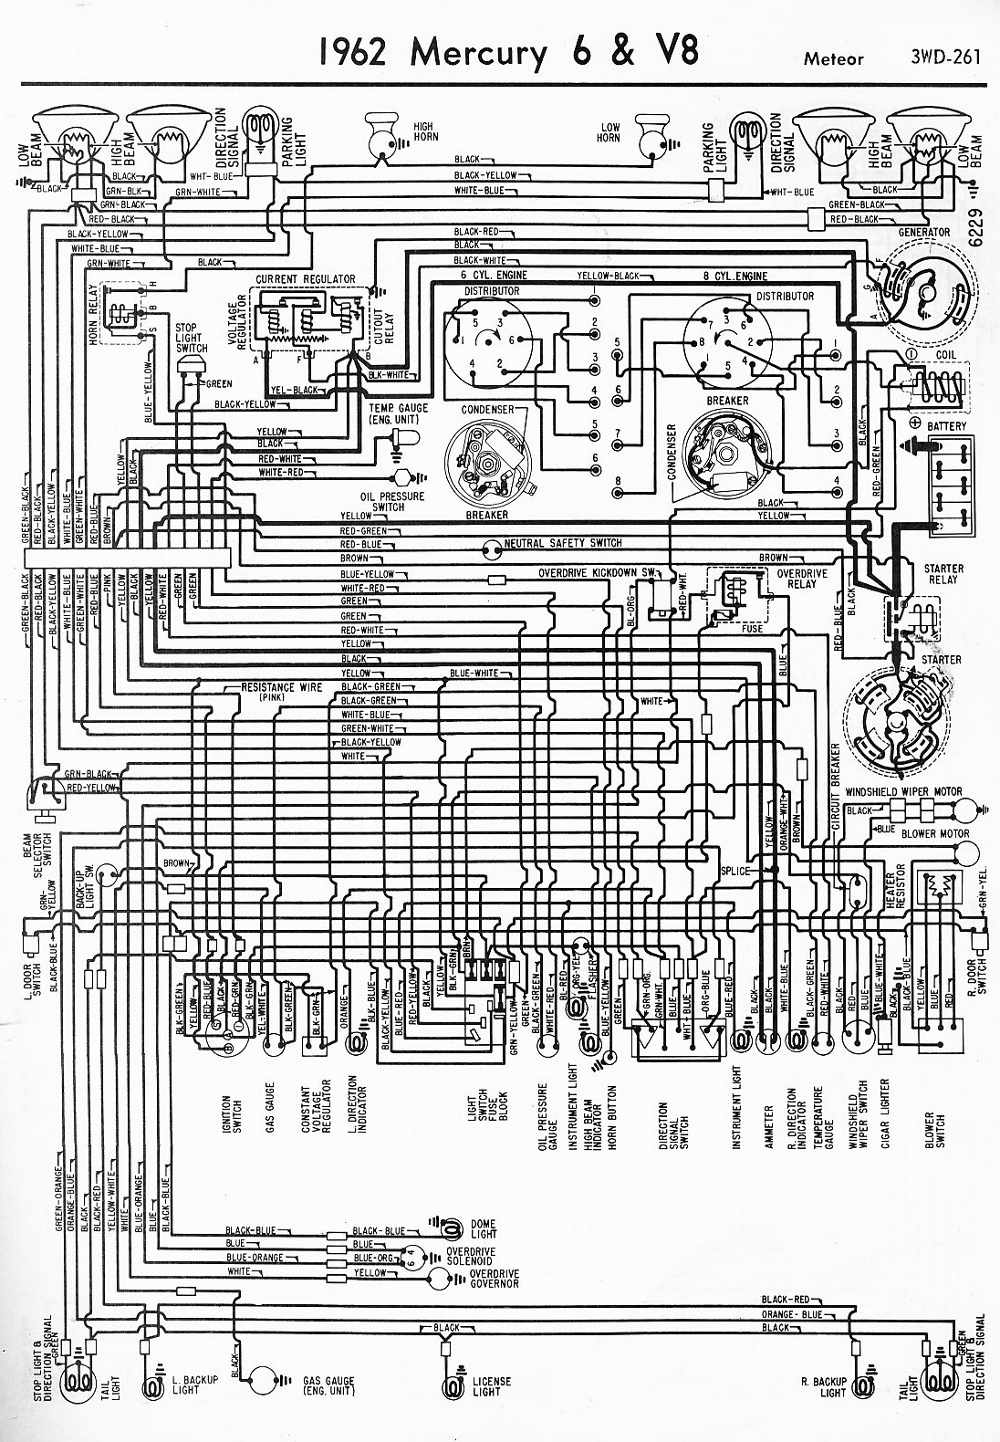 medium resolution of 1966 mercury park lane wiring diagram simple wiring post rh 29 asiagourmet igb de 1966 mercury montclair 1968 mercury park lane brougham